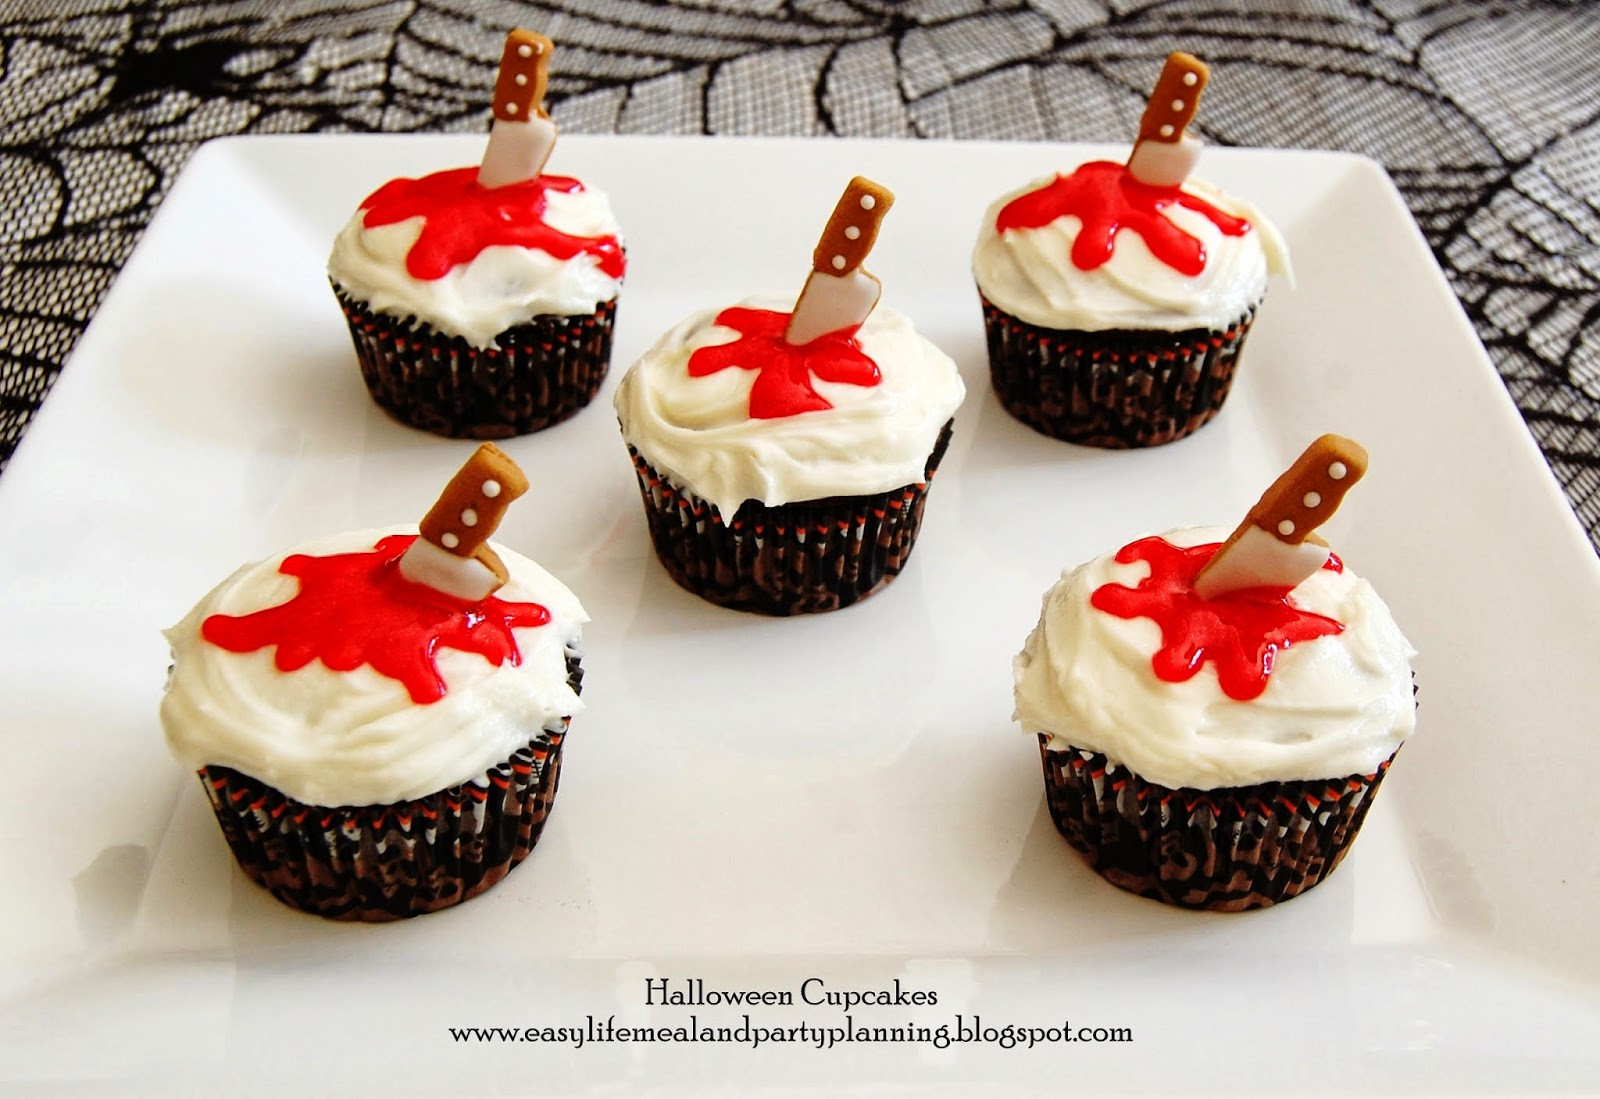 Halloween Cupcakes Decorations  Easy Life Meal and Party Planning October 2013